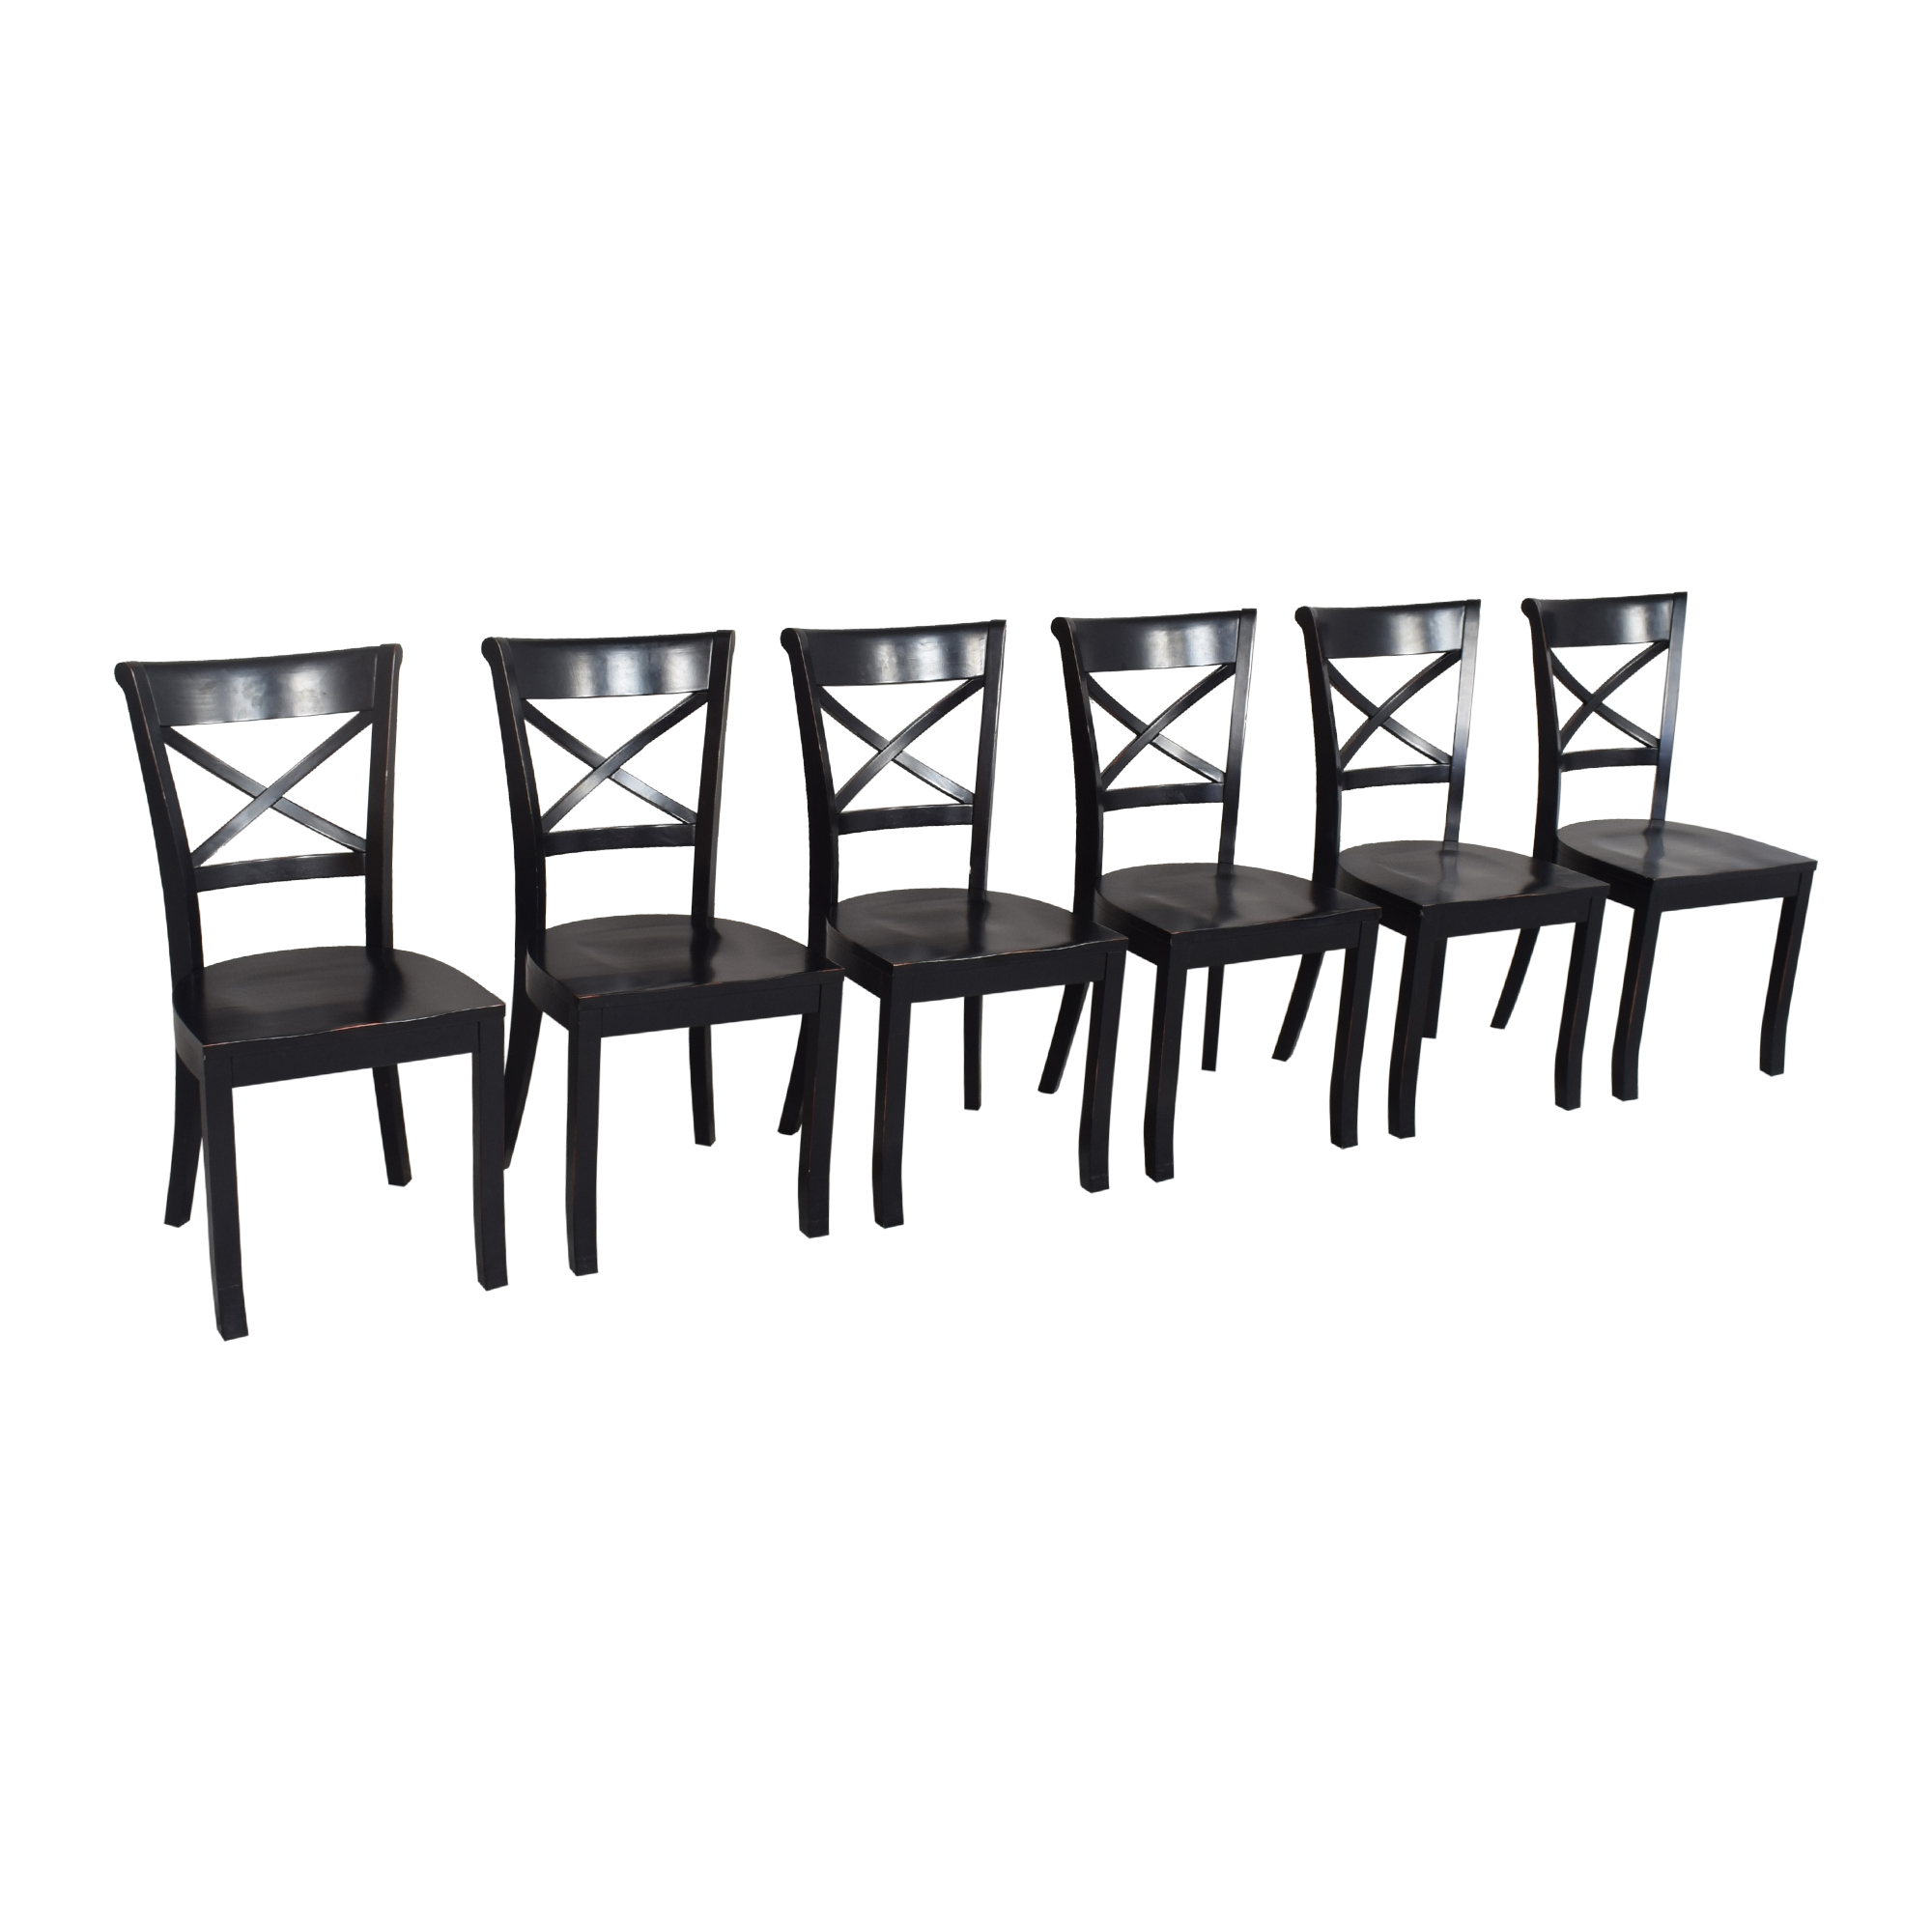 Crate & Barrel Crate & Barrel Vintner X Back Dining Chairs second hand